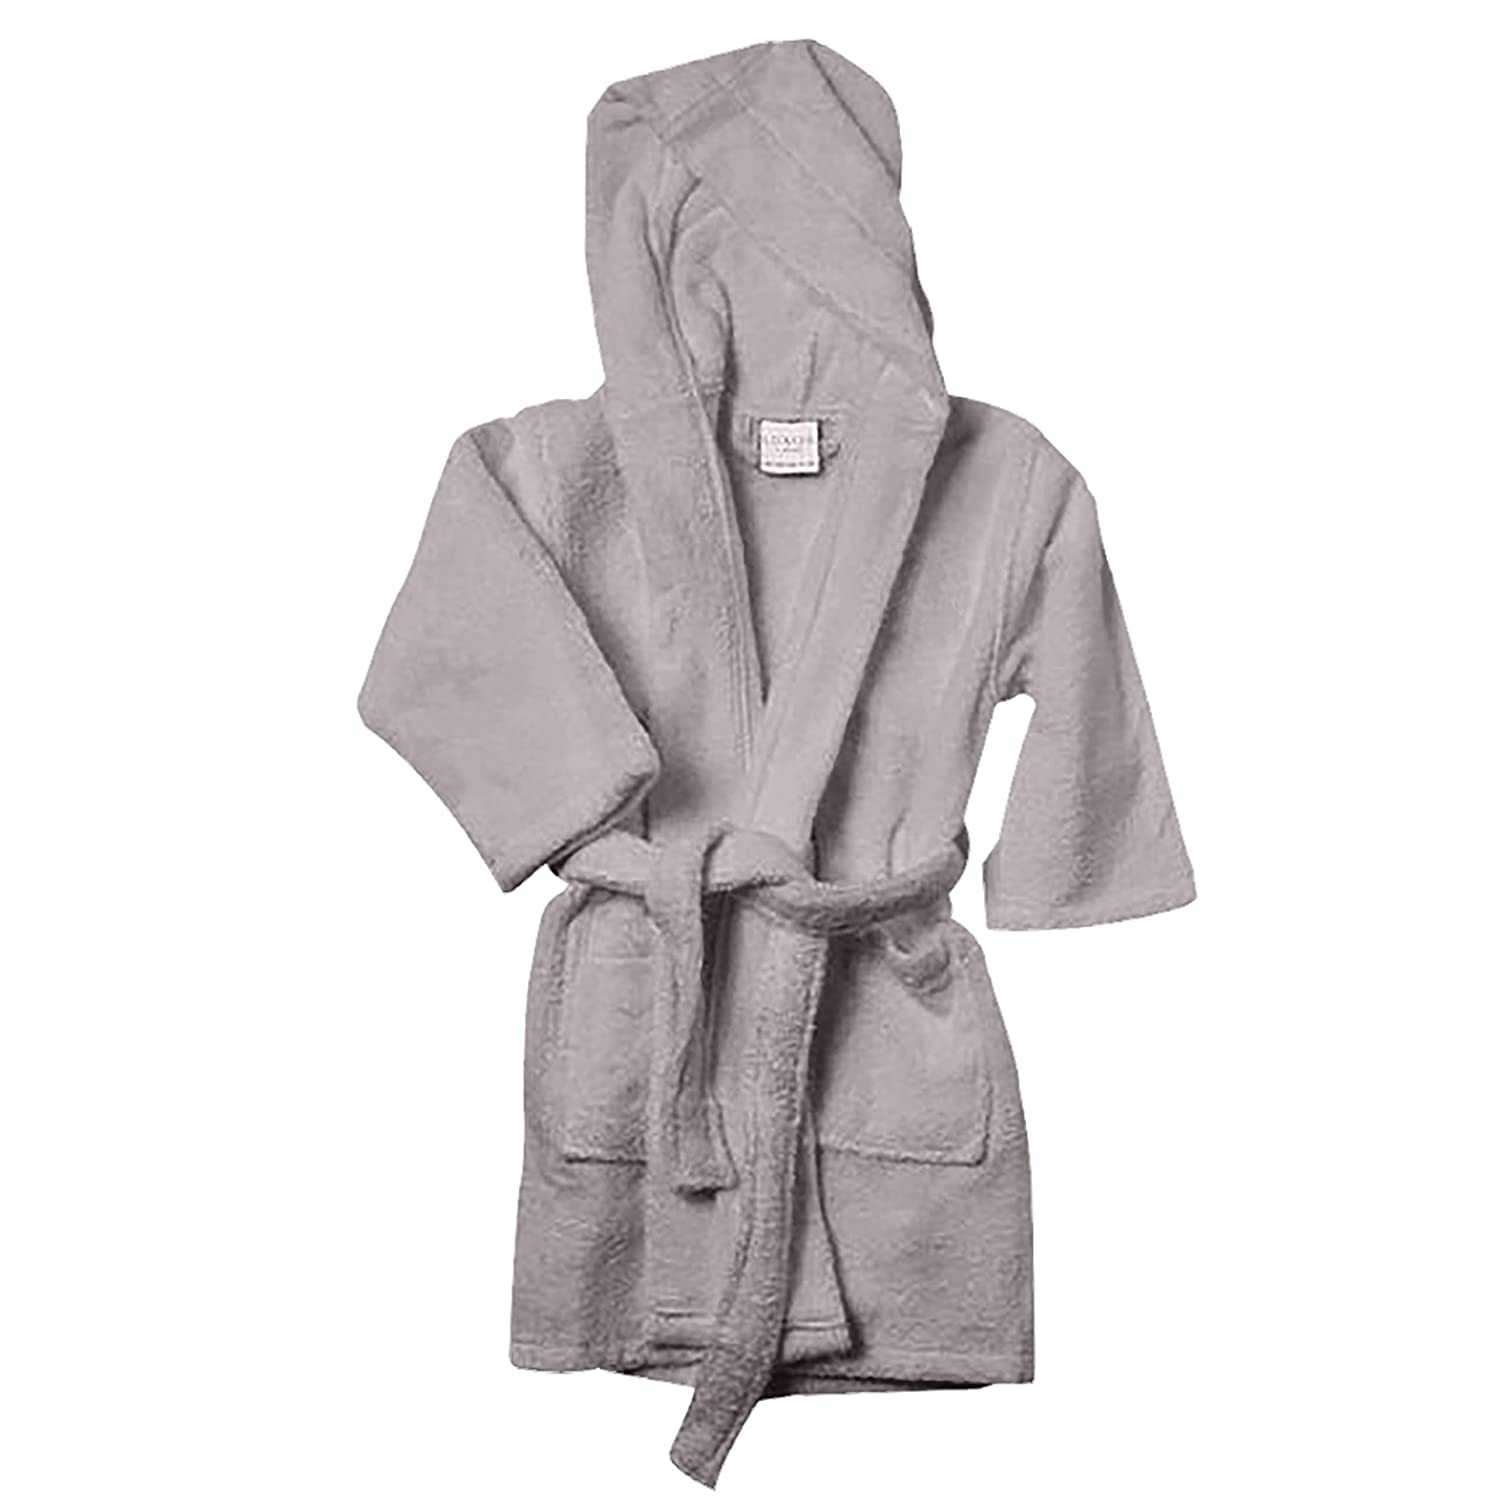 Luxor Linens Kids Robe - Luxury Hooded Bathrobe for Girls and Boys and 100% Egyptian Cotton (Light Grey, Small/Medium)